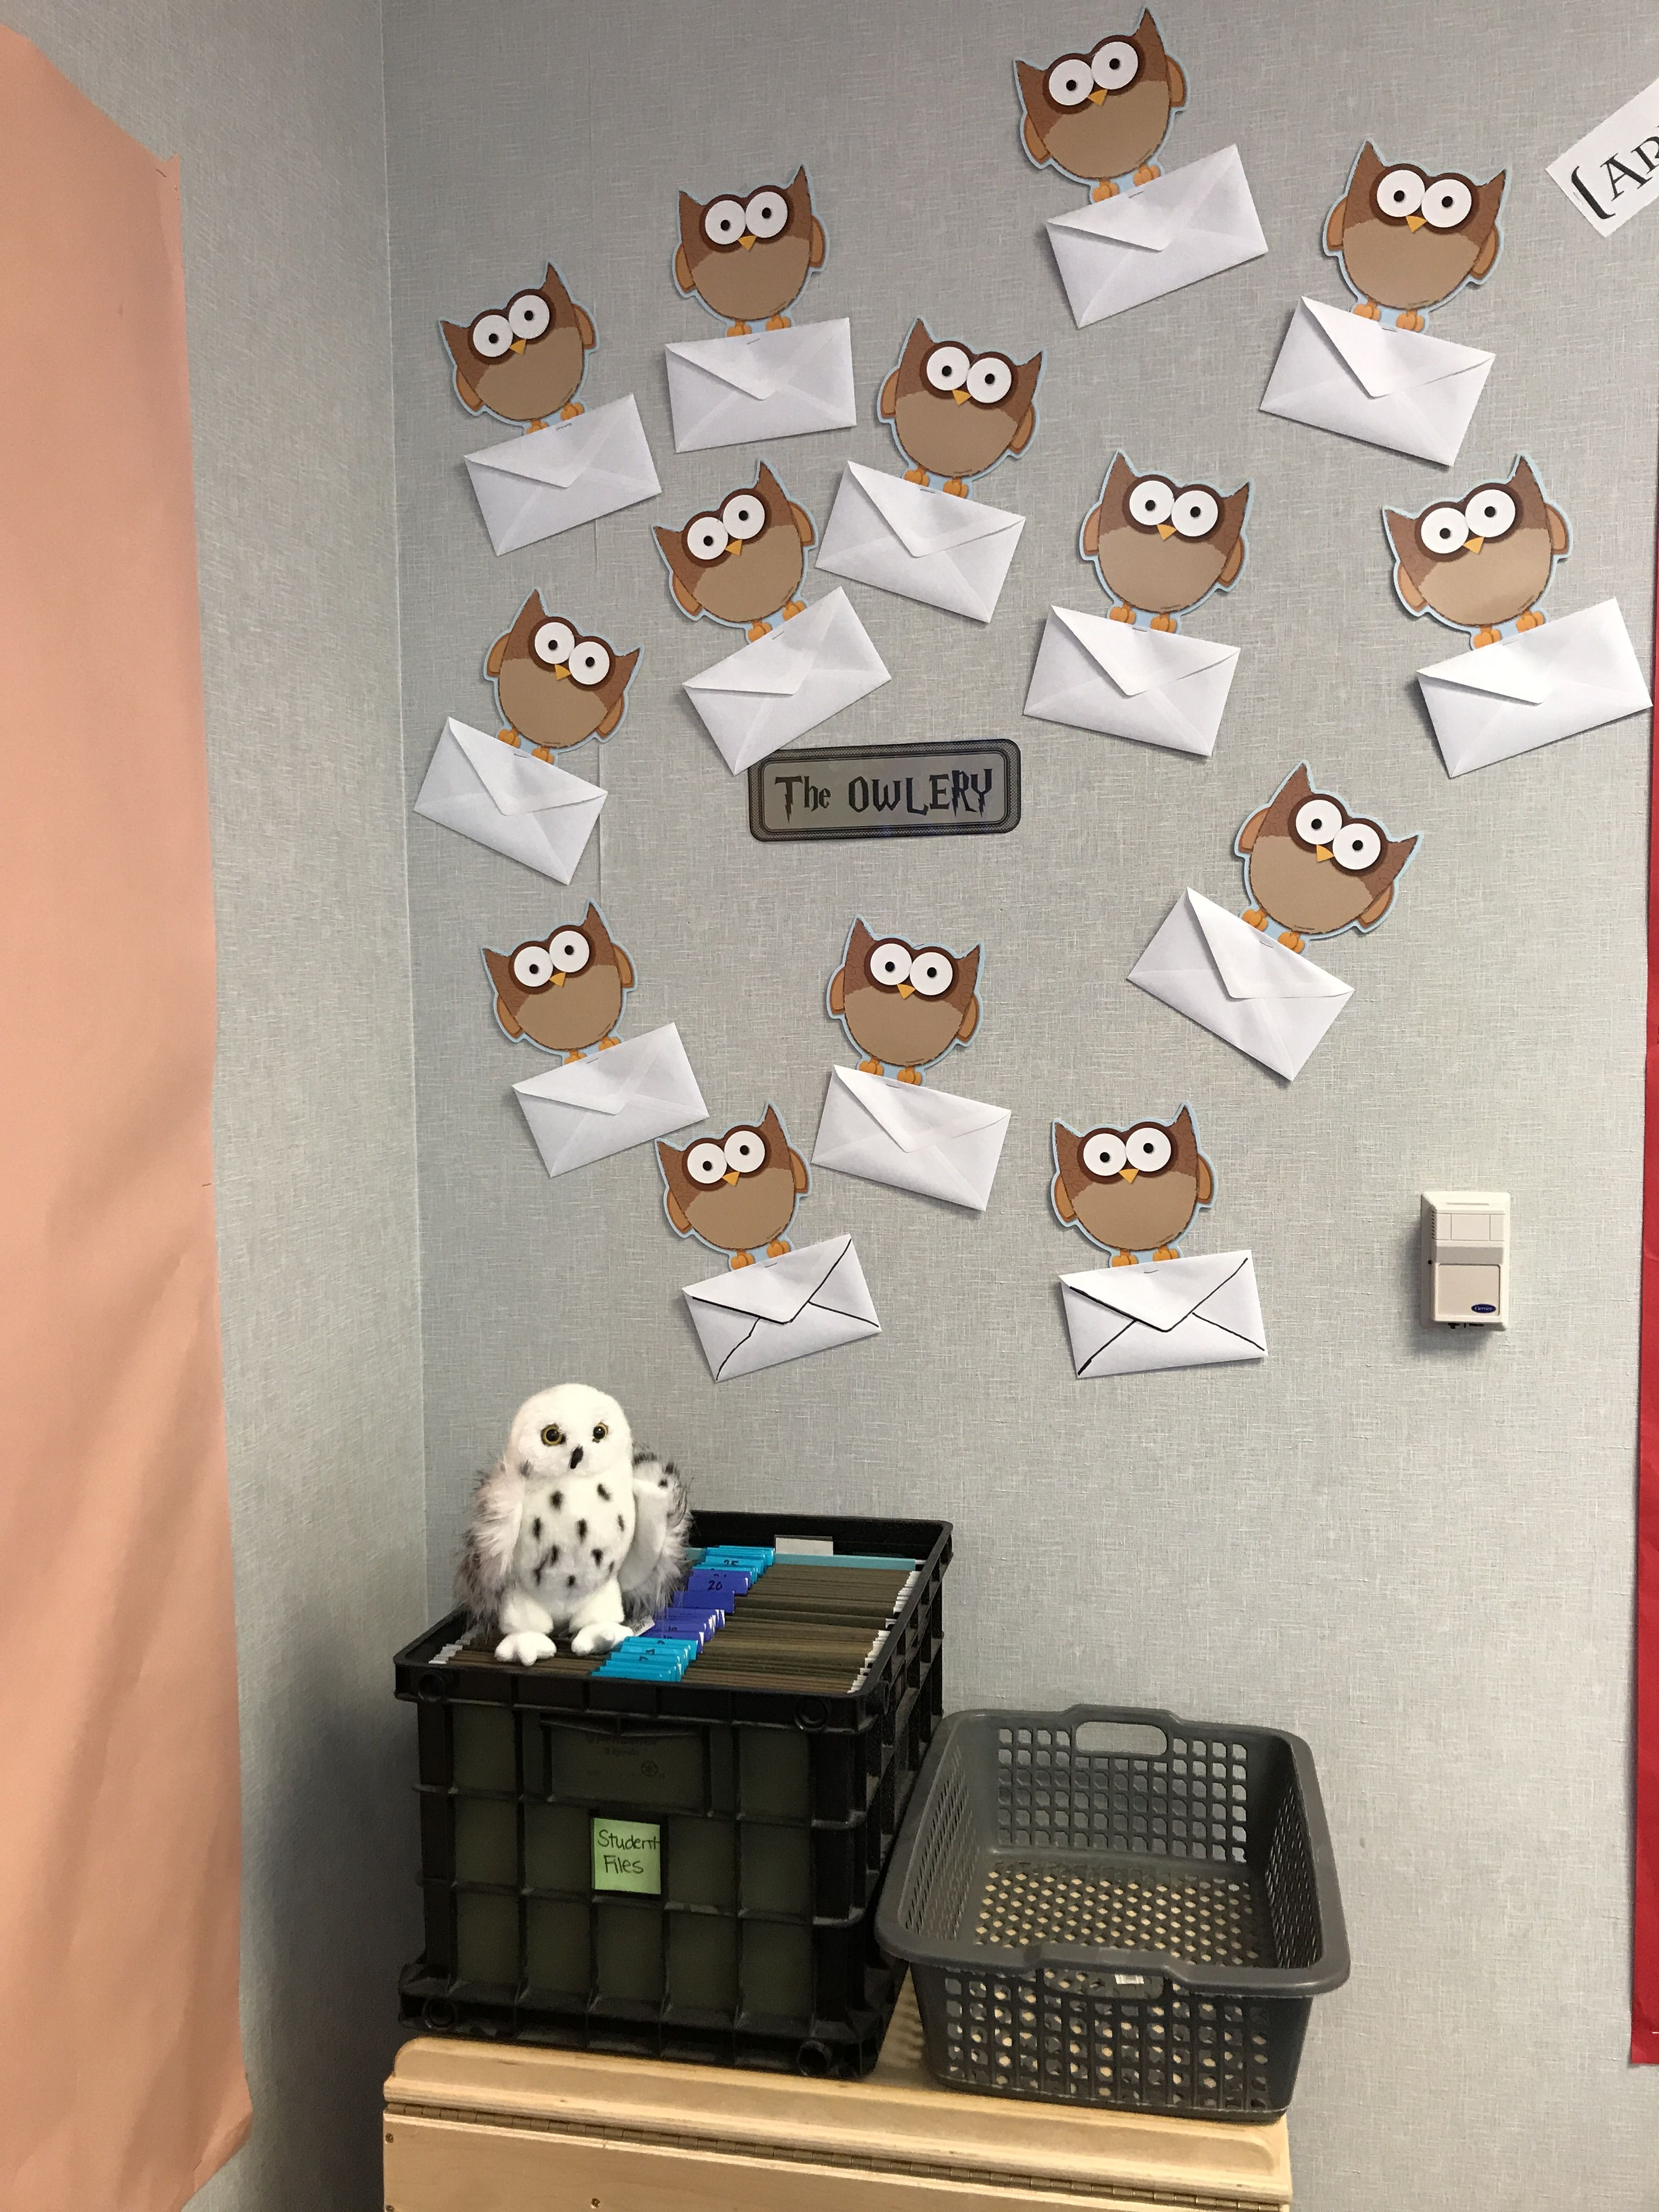 Harry Potter Owlery Classroom Mailbox I Like This Better Than The